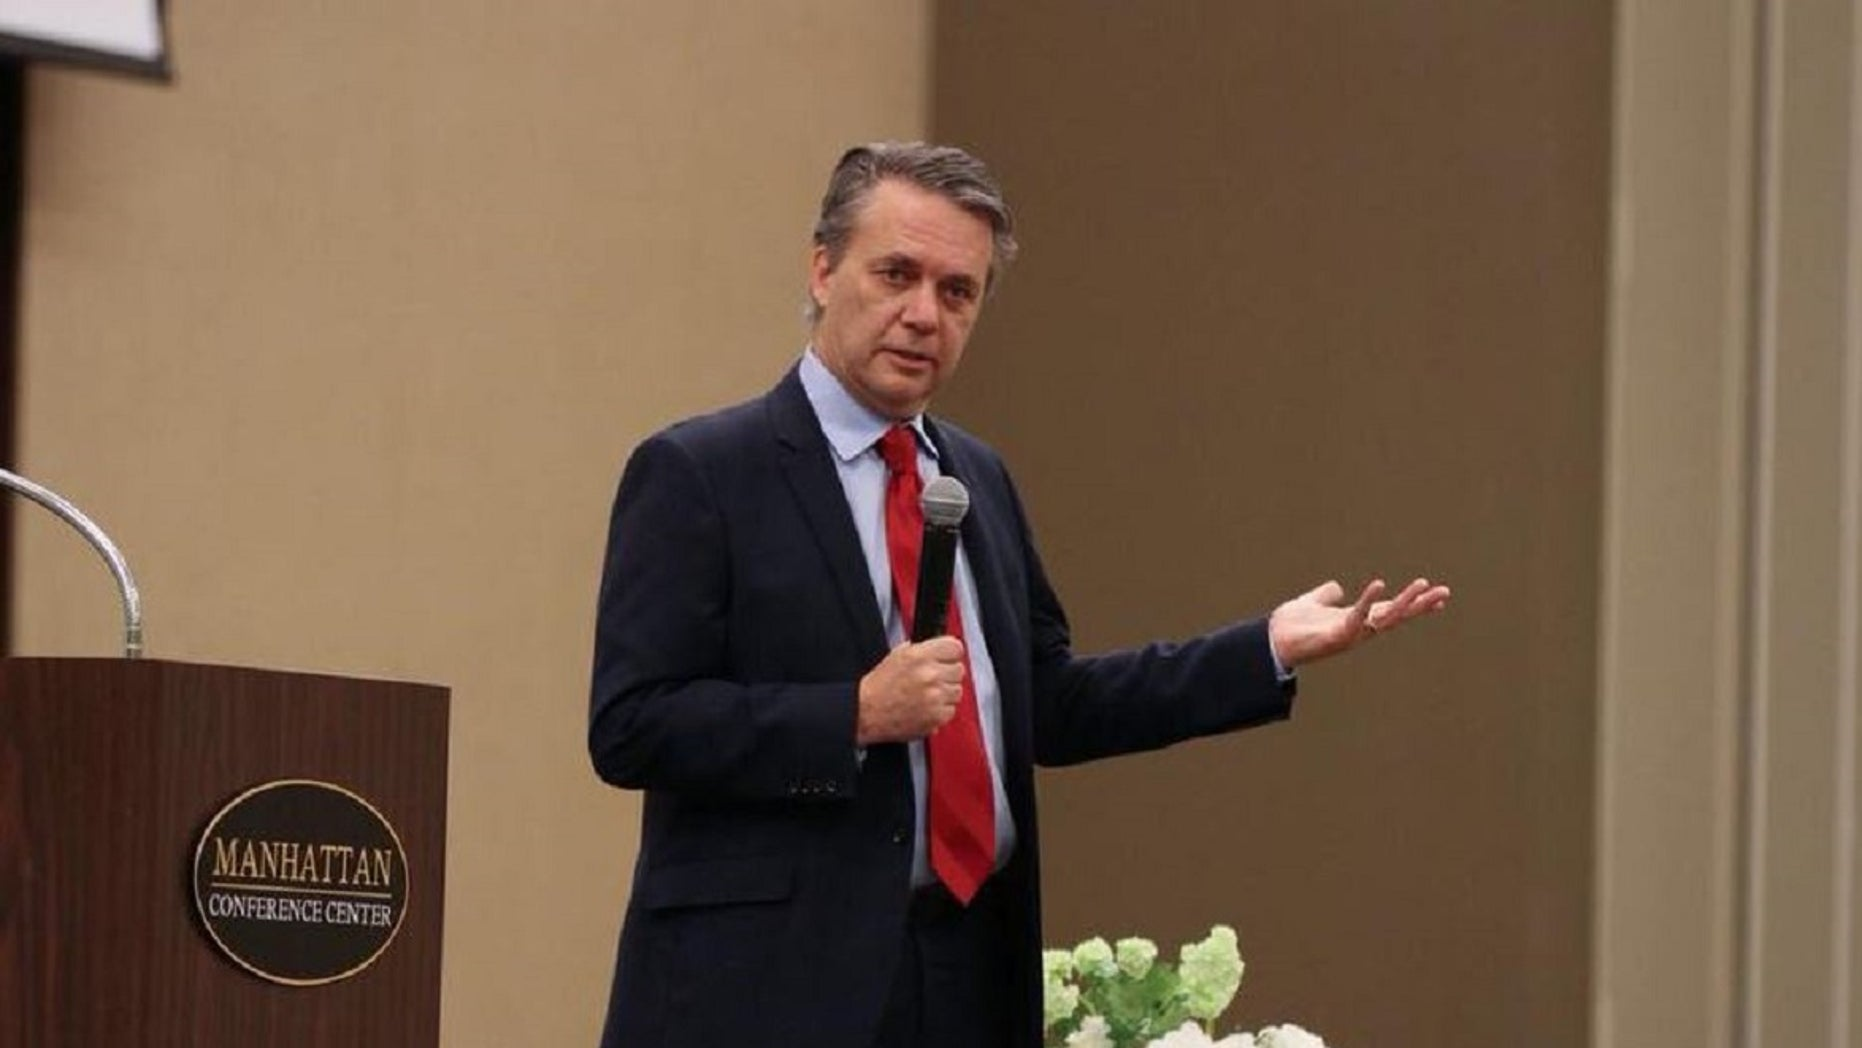 Kansas Gov. Jeff Colyer's administration has scrapped plans for a tech storage system because officials determined it would be too costly.